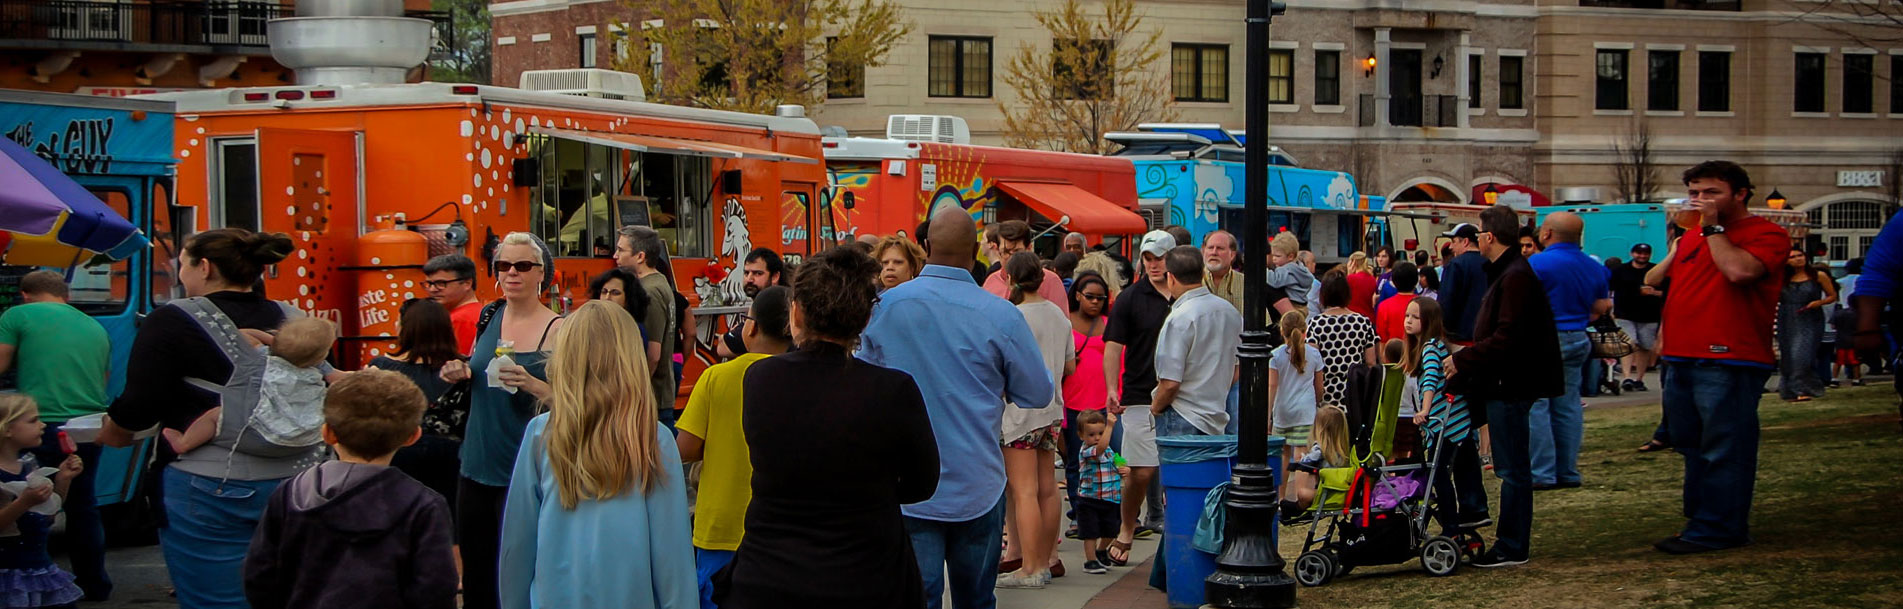 Image result for aloha food truck friday in suwannee